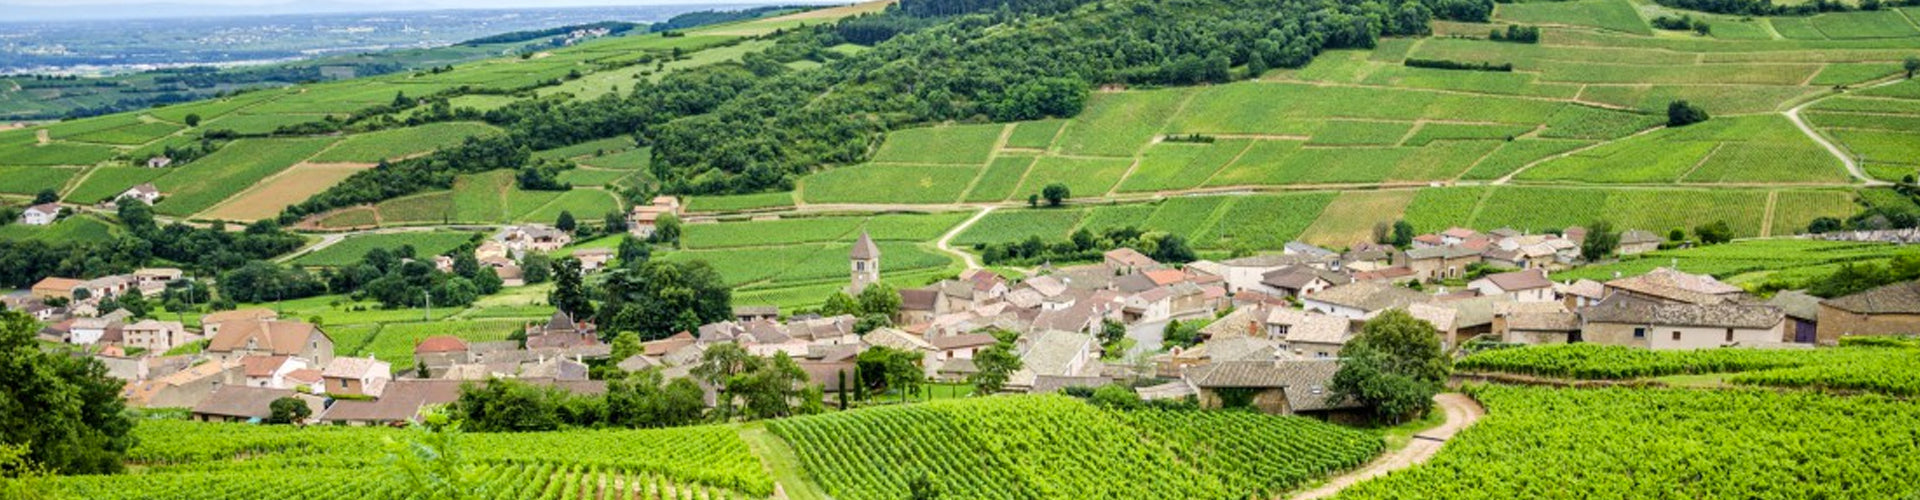 Vineyards in the Mâconnais Region of Burgundy